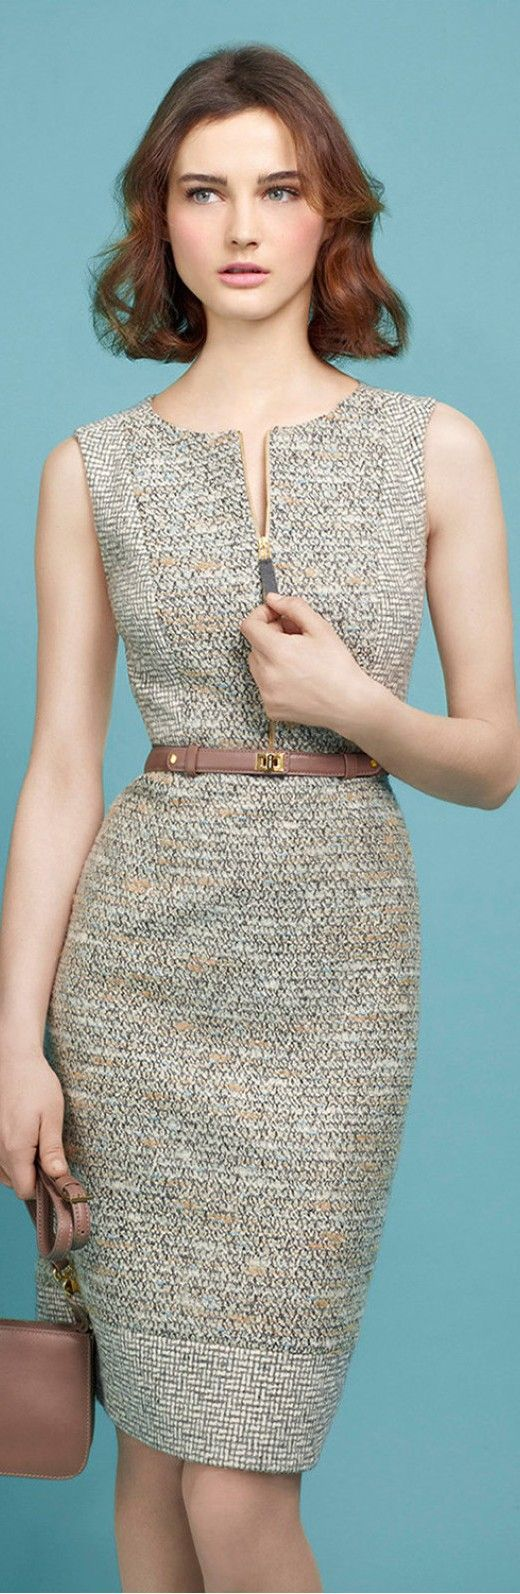 2016 women high quality suit set office ladies work wear women ol tweed midi dress outfit